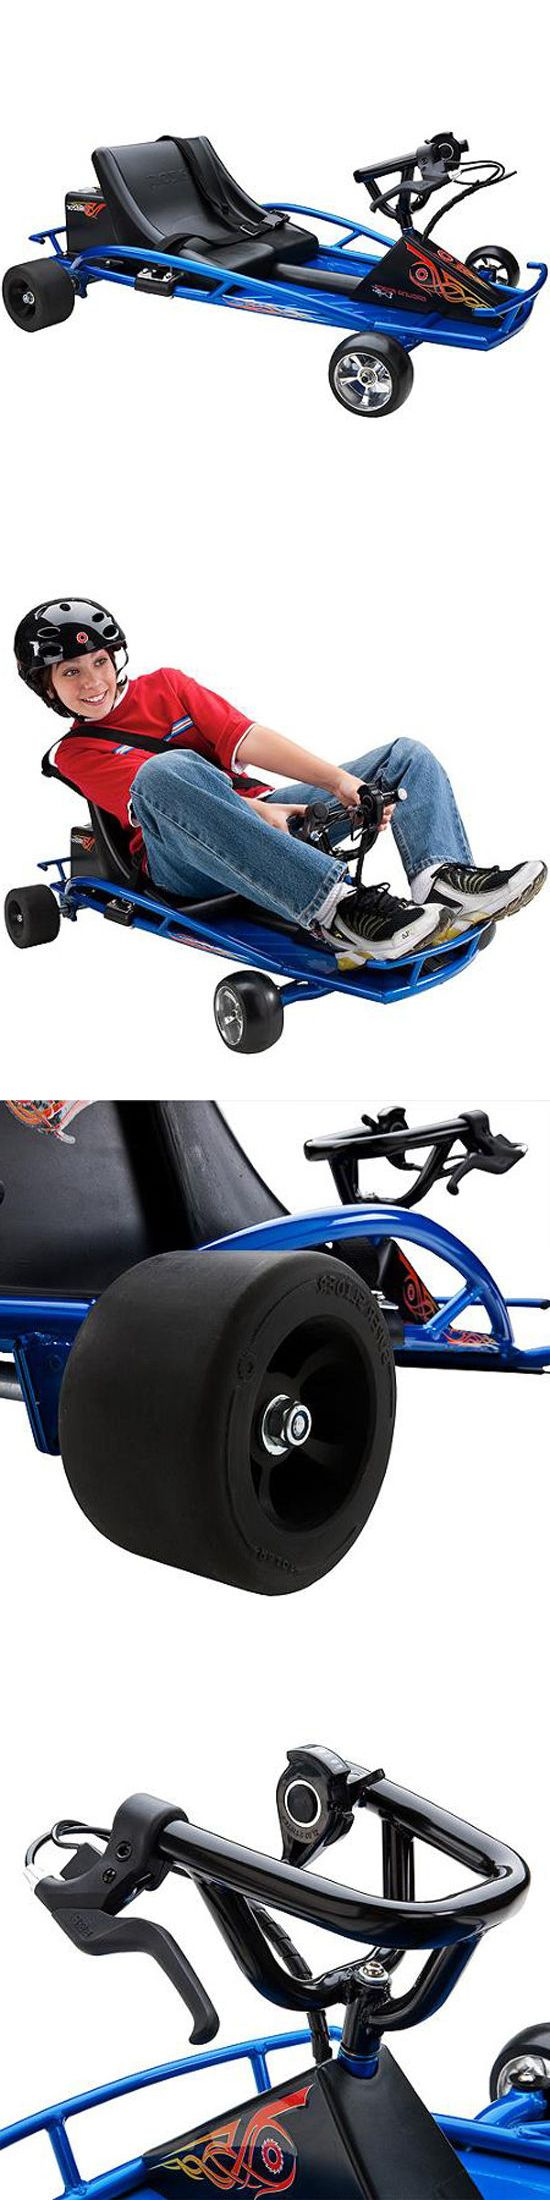 Complete Go-Karts and Frames 64656: Electric Go Kart Slide Drift Battery Powered Kids Rideon Fast Gokart Toy Gift -> BUY IT NOW ONLY: $356 on eBay!